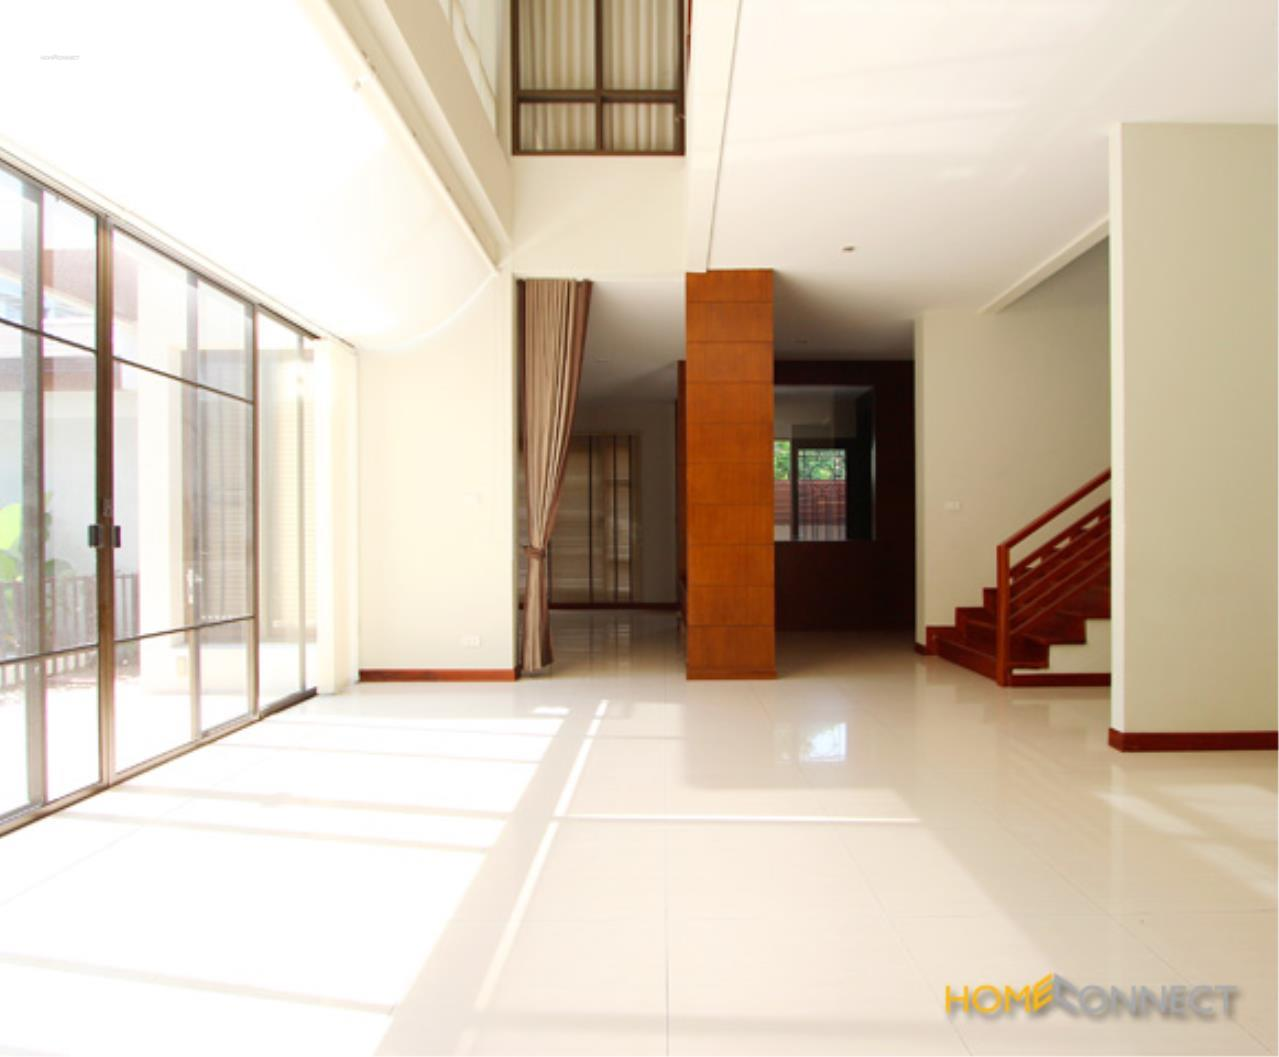 Home Connect Thailand Agency's Single House for rent in Suklhumvit 26  2